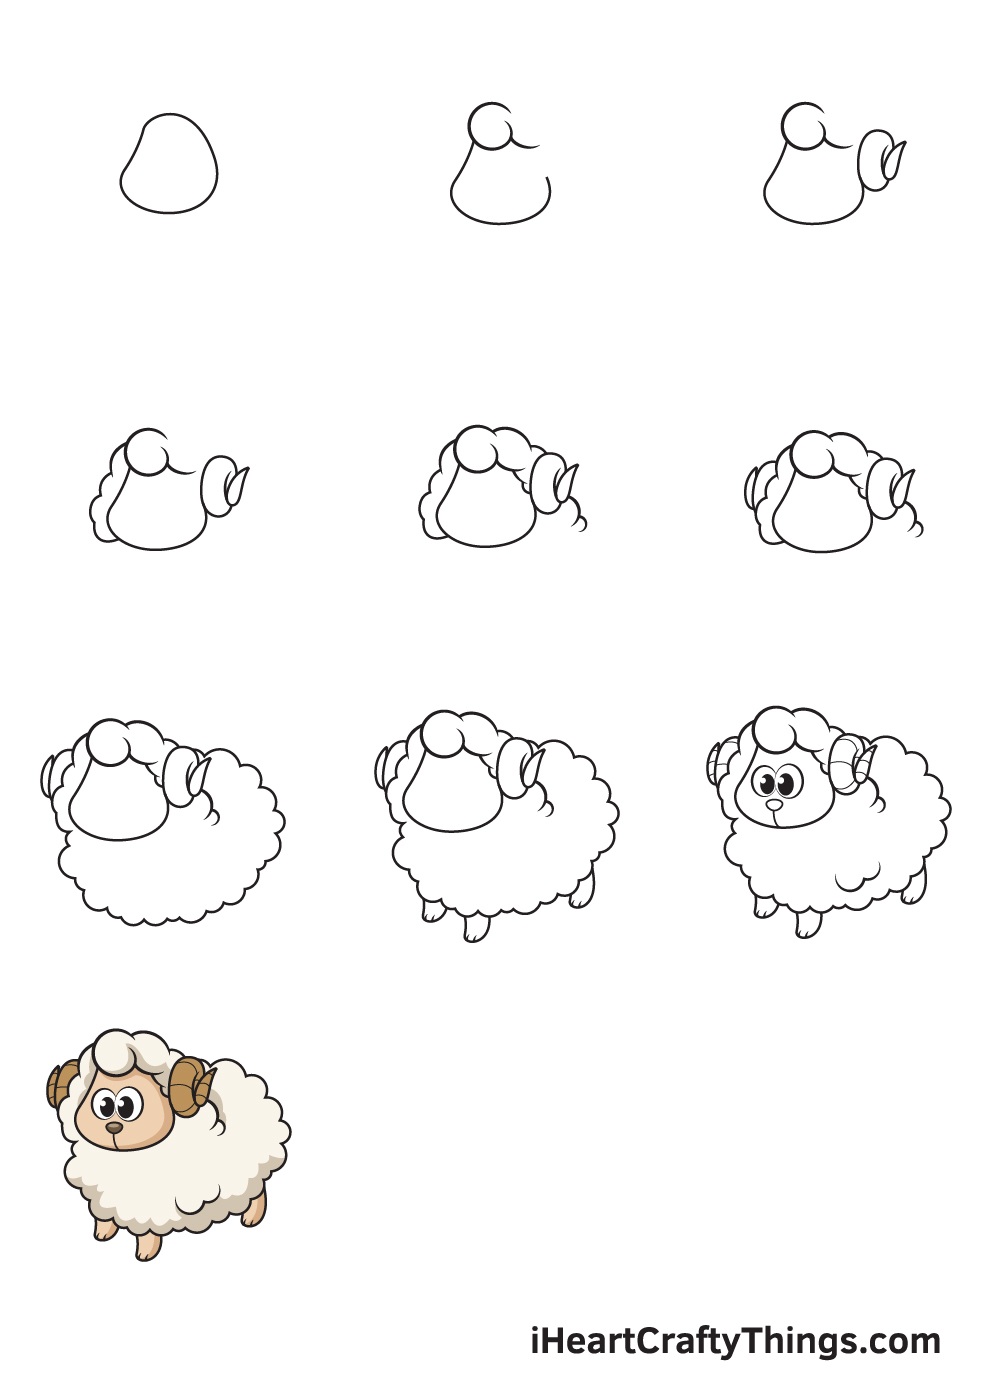 drawing sheep in 9 easy steps